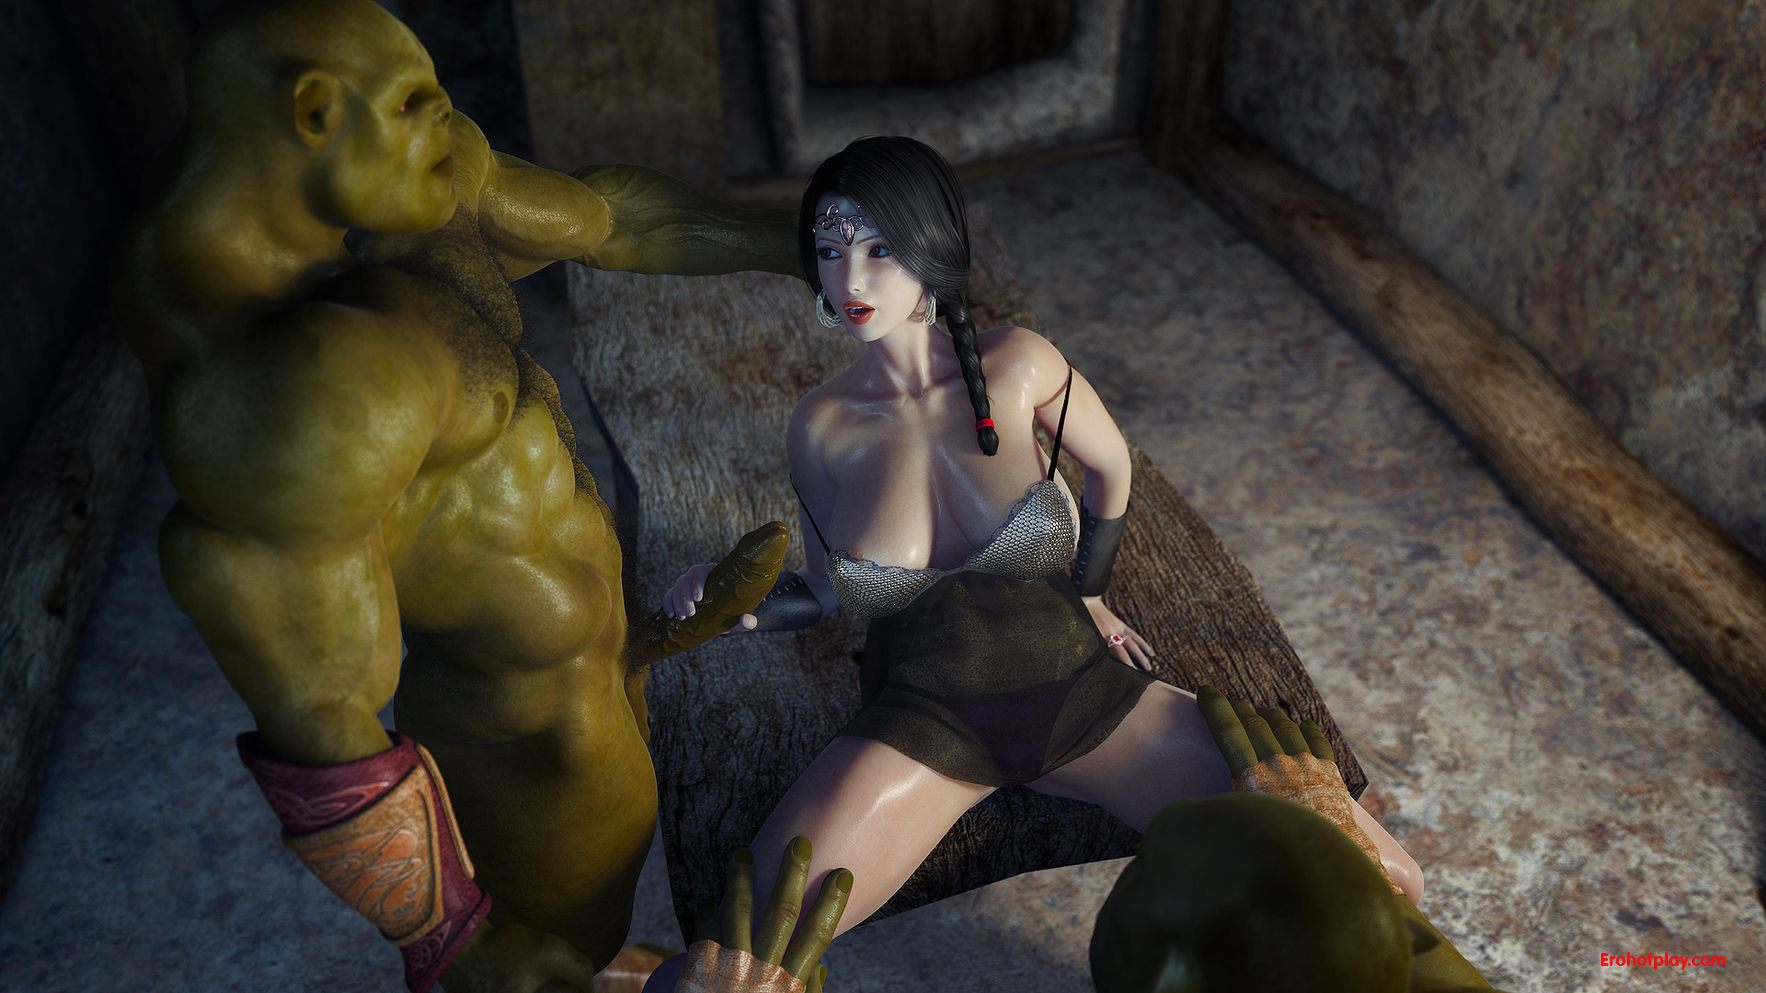 Two orc fuck princess 3d porncraft streaming